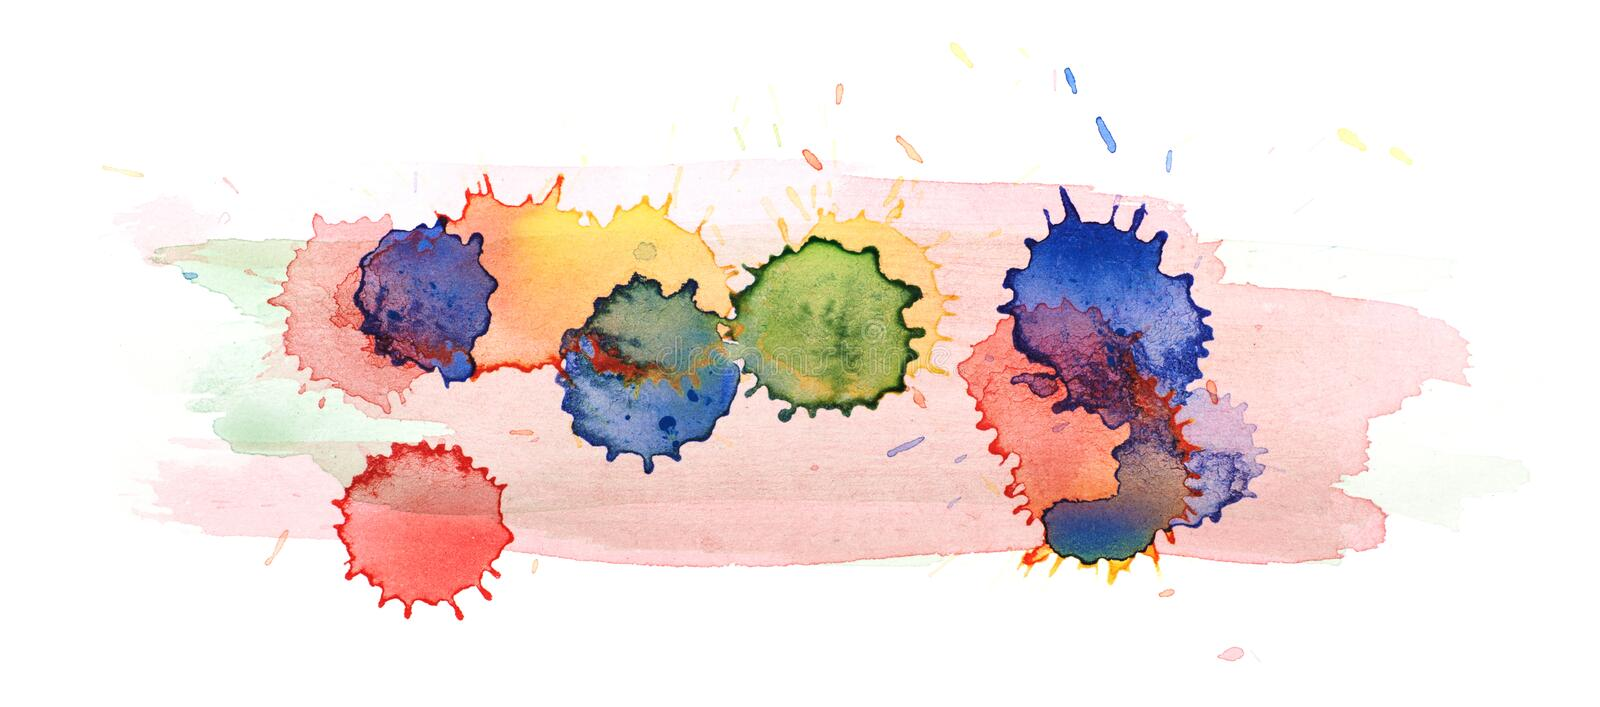 Watercolor drop stain isolated royalty free illustration